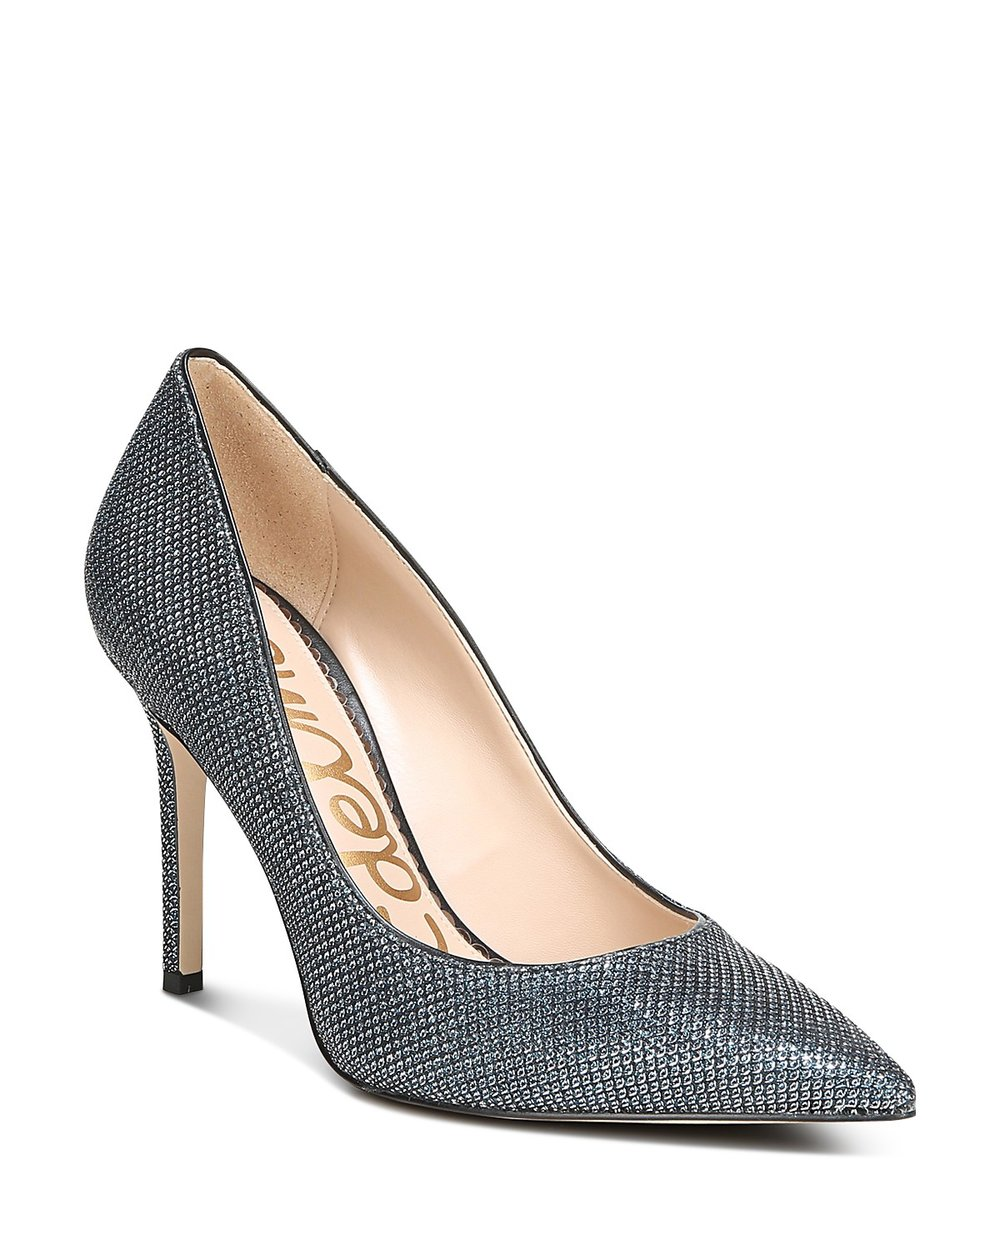 The Mermaid - These pumps have a smaller size scale but I love the iridescence of them. They really are beautiful but not too loud and retail for $84.00. Buy them here!